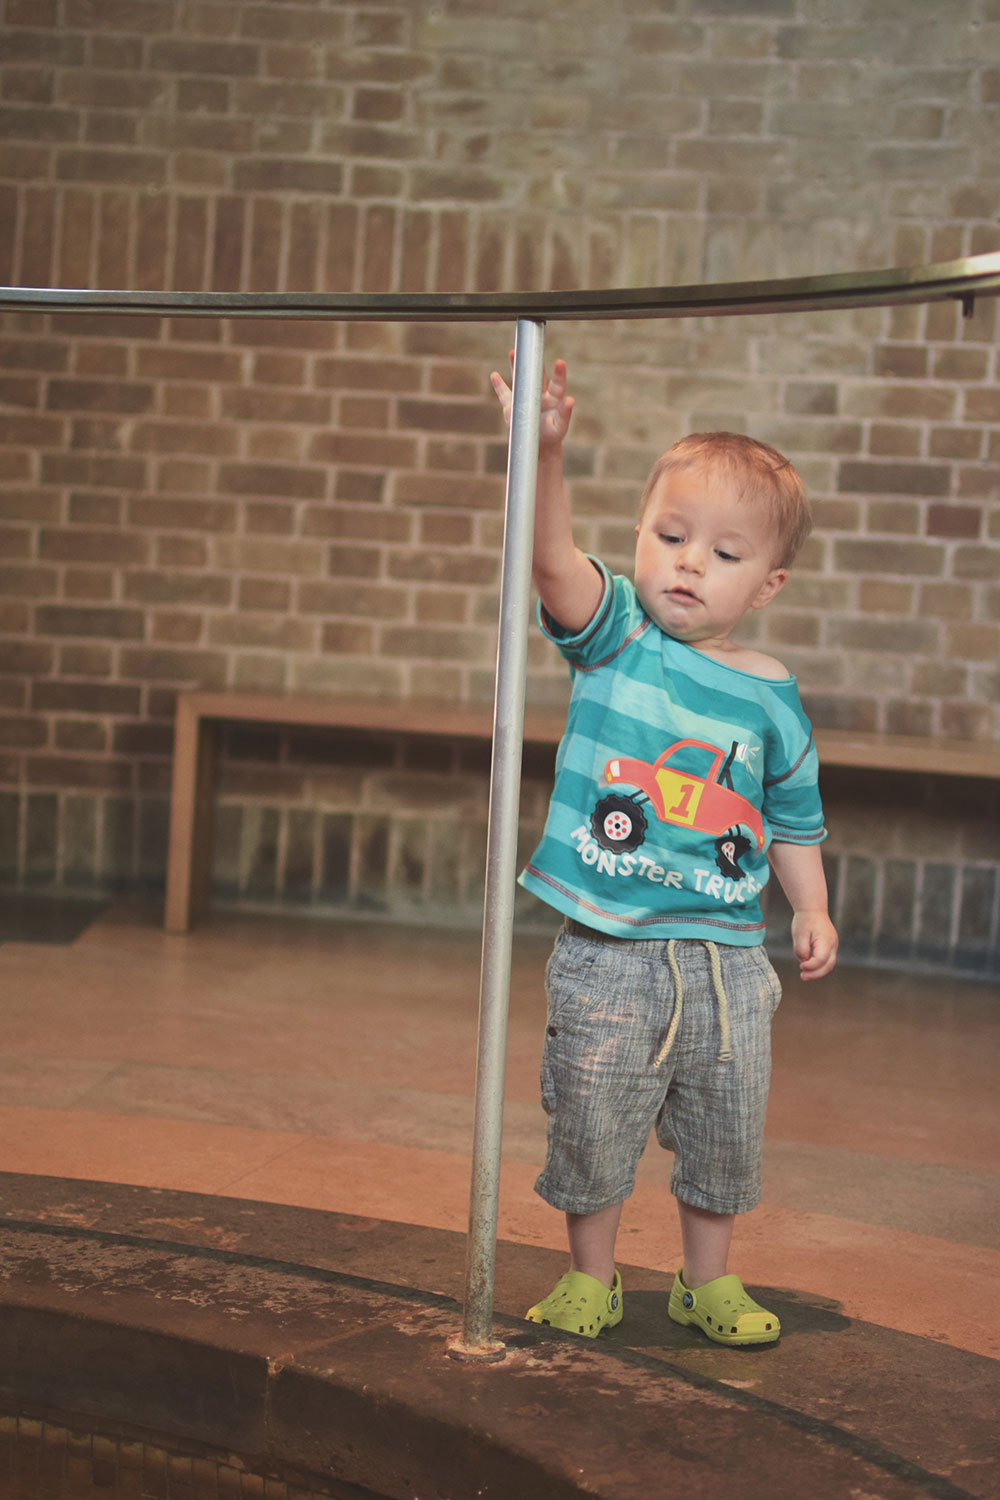 One Beautiful Sweaty Sunday at Stratford-upon-Avon - Toddler throwing pennies into the fountain in the RSC - Royal Shakespeare Company Theatre - at Stratford-upon-Avon